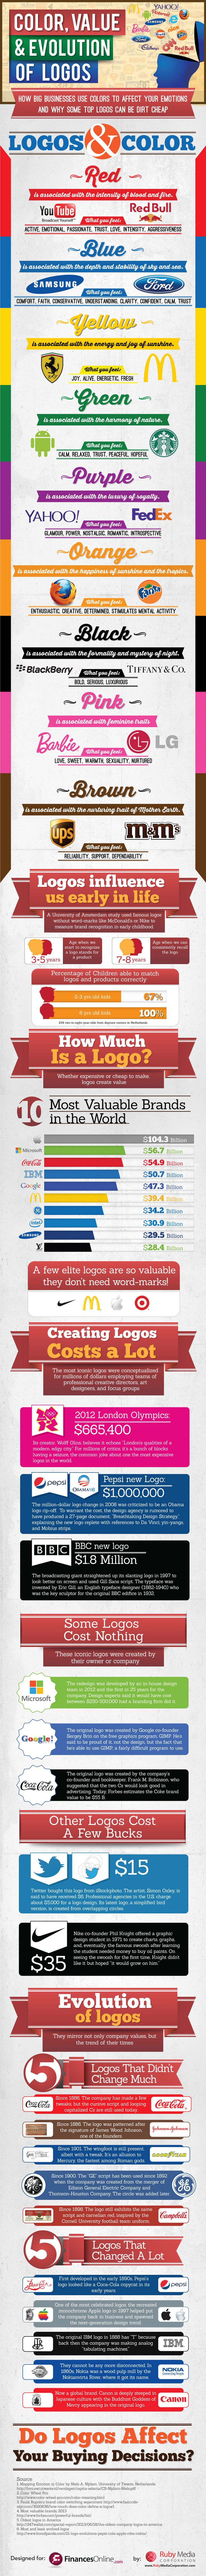 Color can become a key part of any brand. Whether your logo is red and intense, yellow and joyful or black and mysterious, its colors are announcing something to the customer. As you create the perfect logo, be sure to pay attention to the color messages you're sending.  Check out the infographic below to figure out exactly what your logo's colors are telling potential customers.